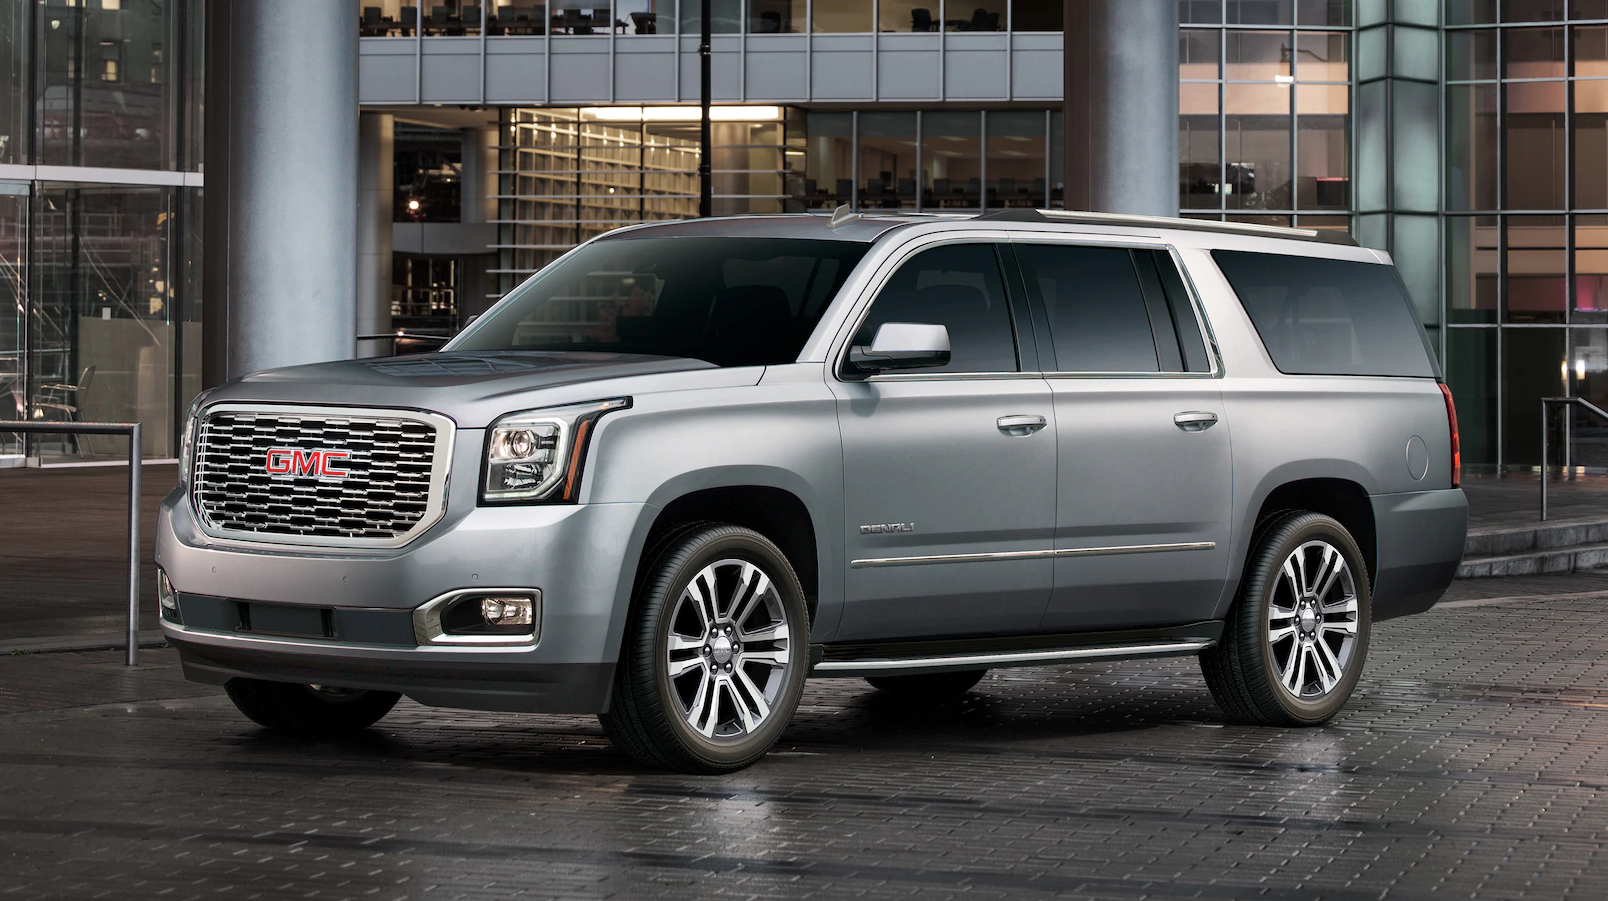 Silver 2019 GMC Yukon in front of glass office